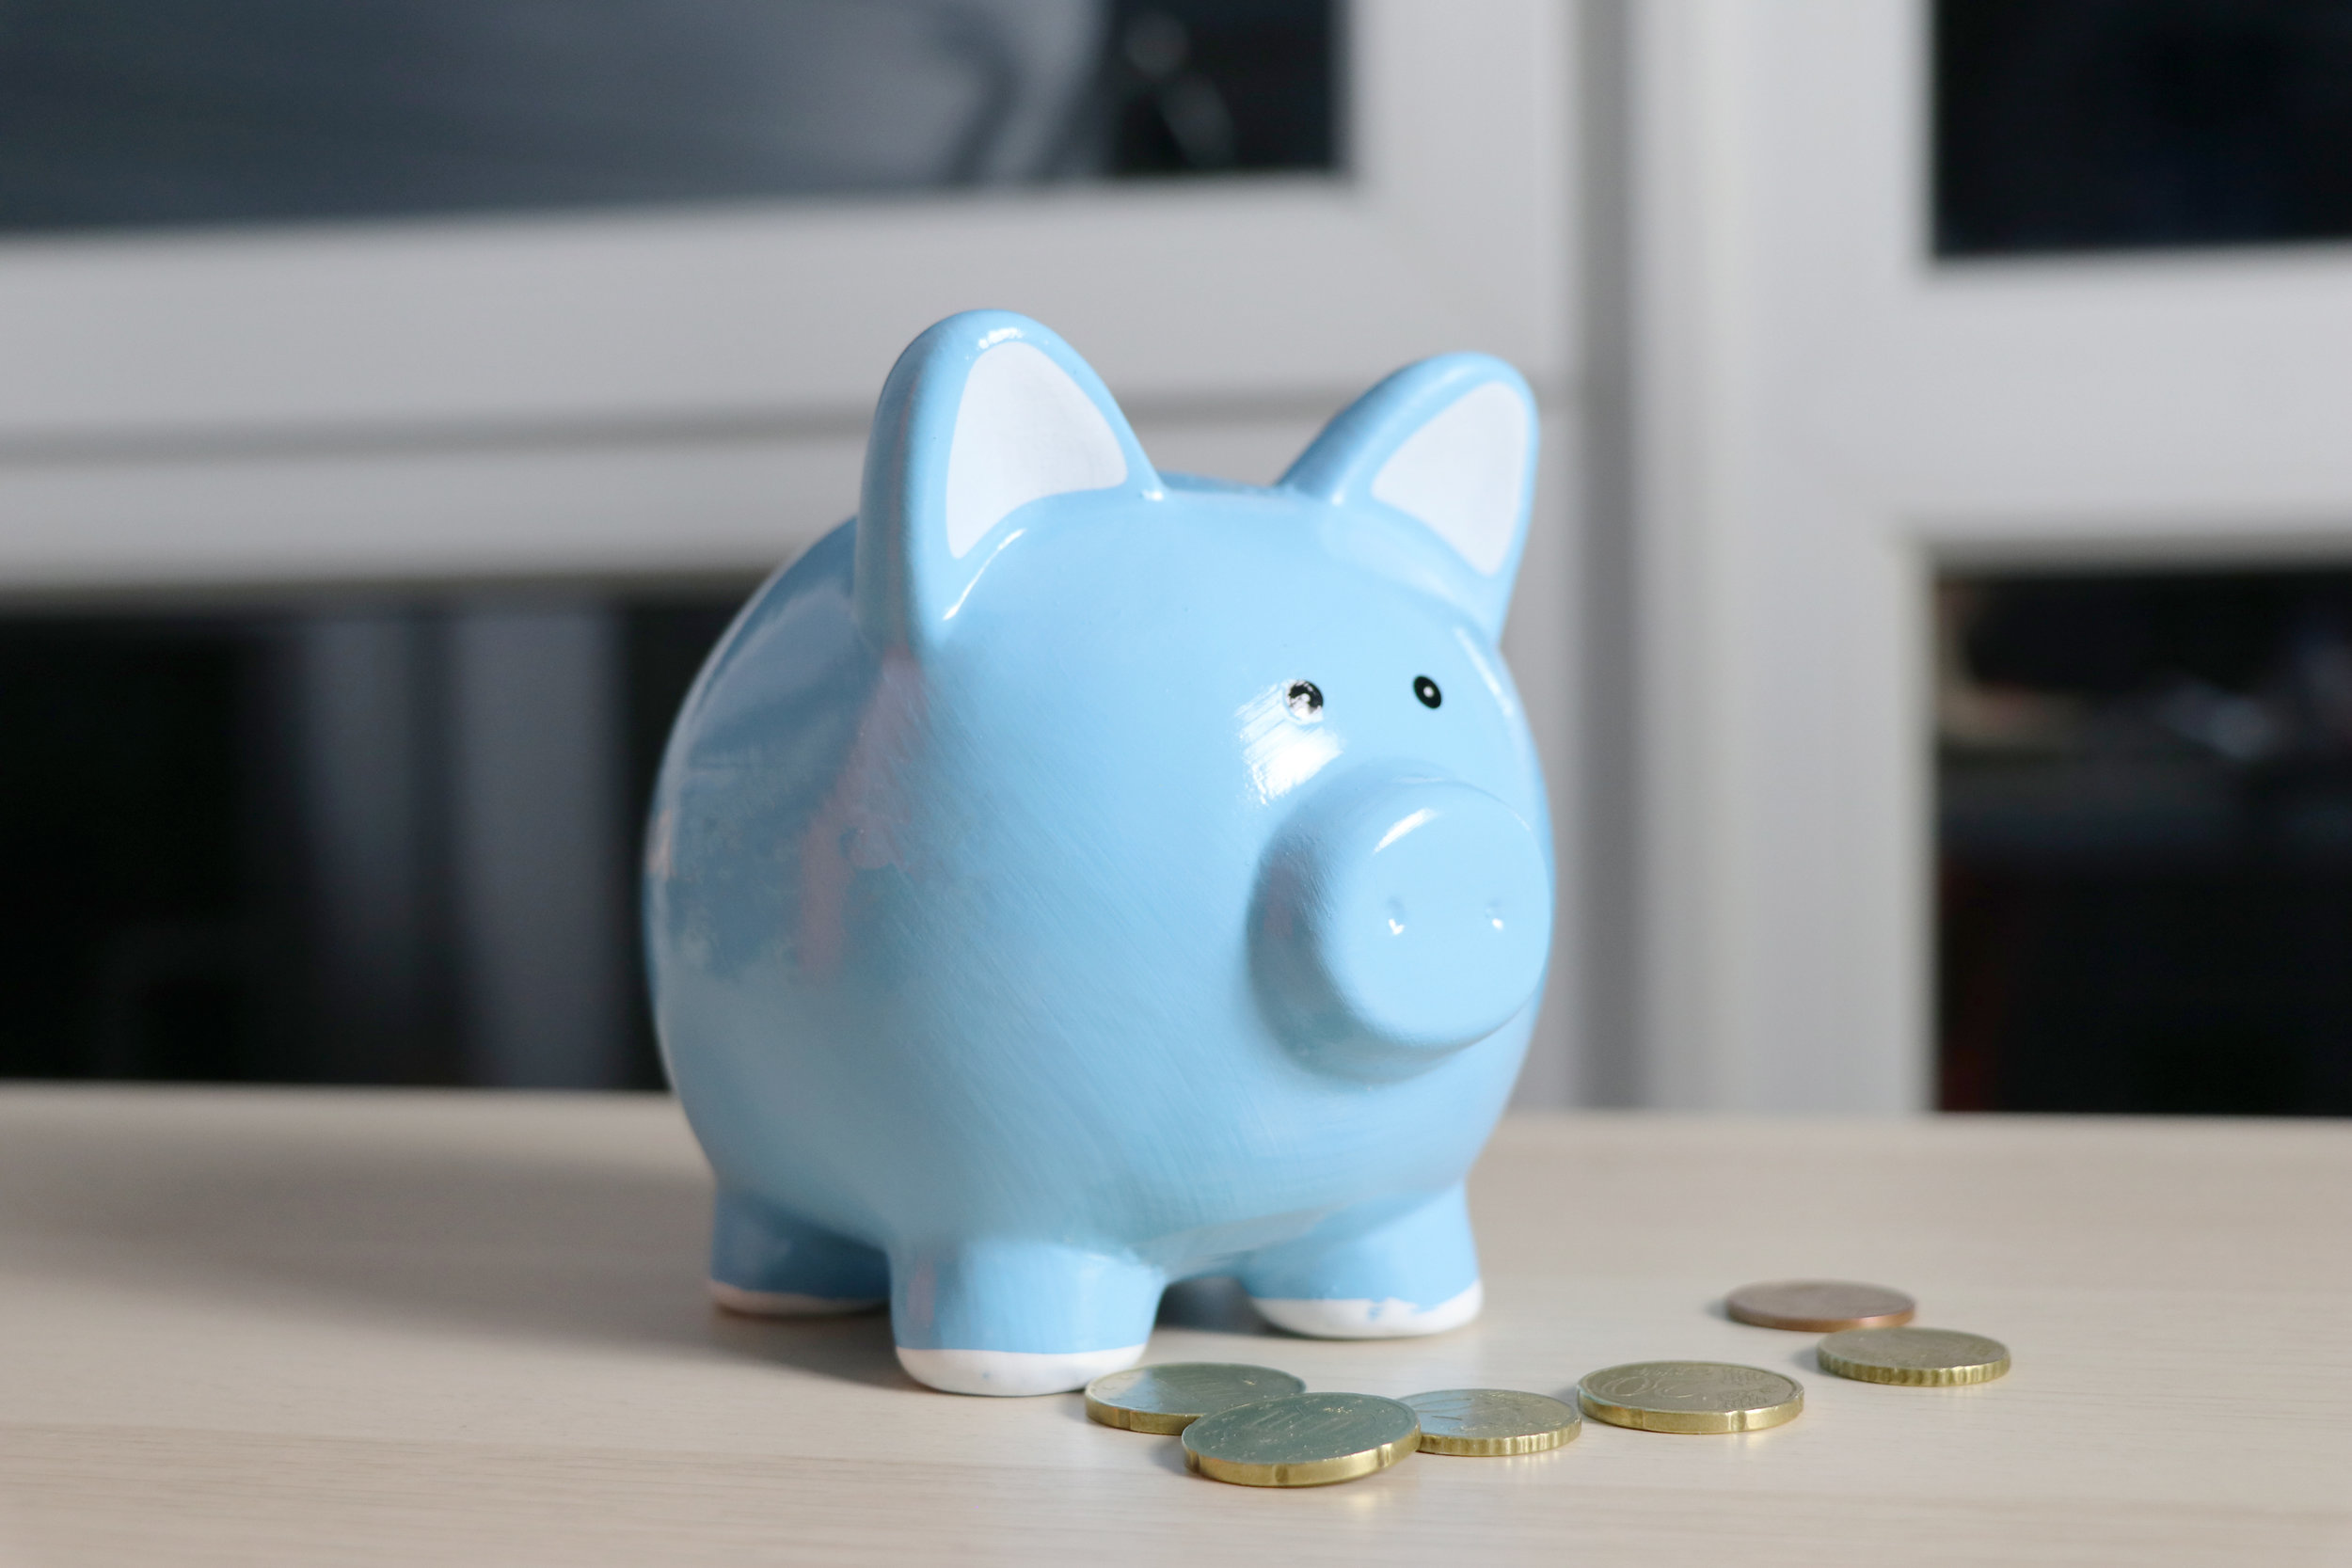 Easy Ways To Pay - We offer Flexible payment plans for new boiler finance in Leicester, Loughborough, Hinckley and Coalville expertly installed by our own Gas Safe installers.